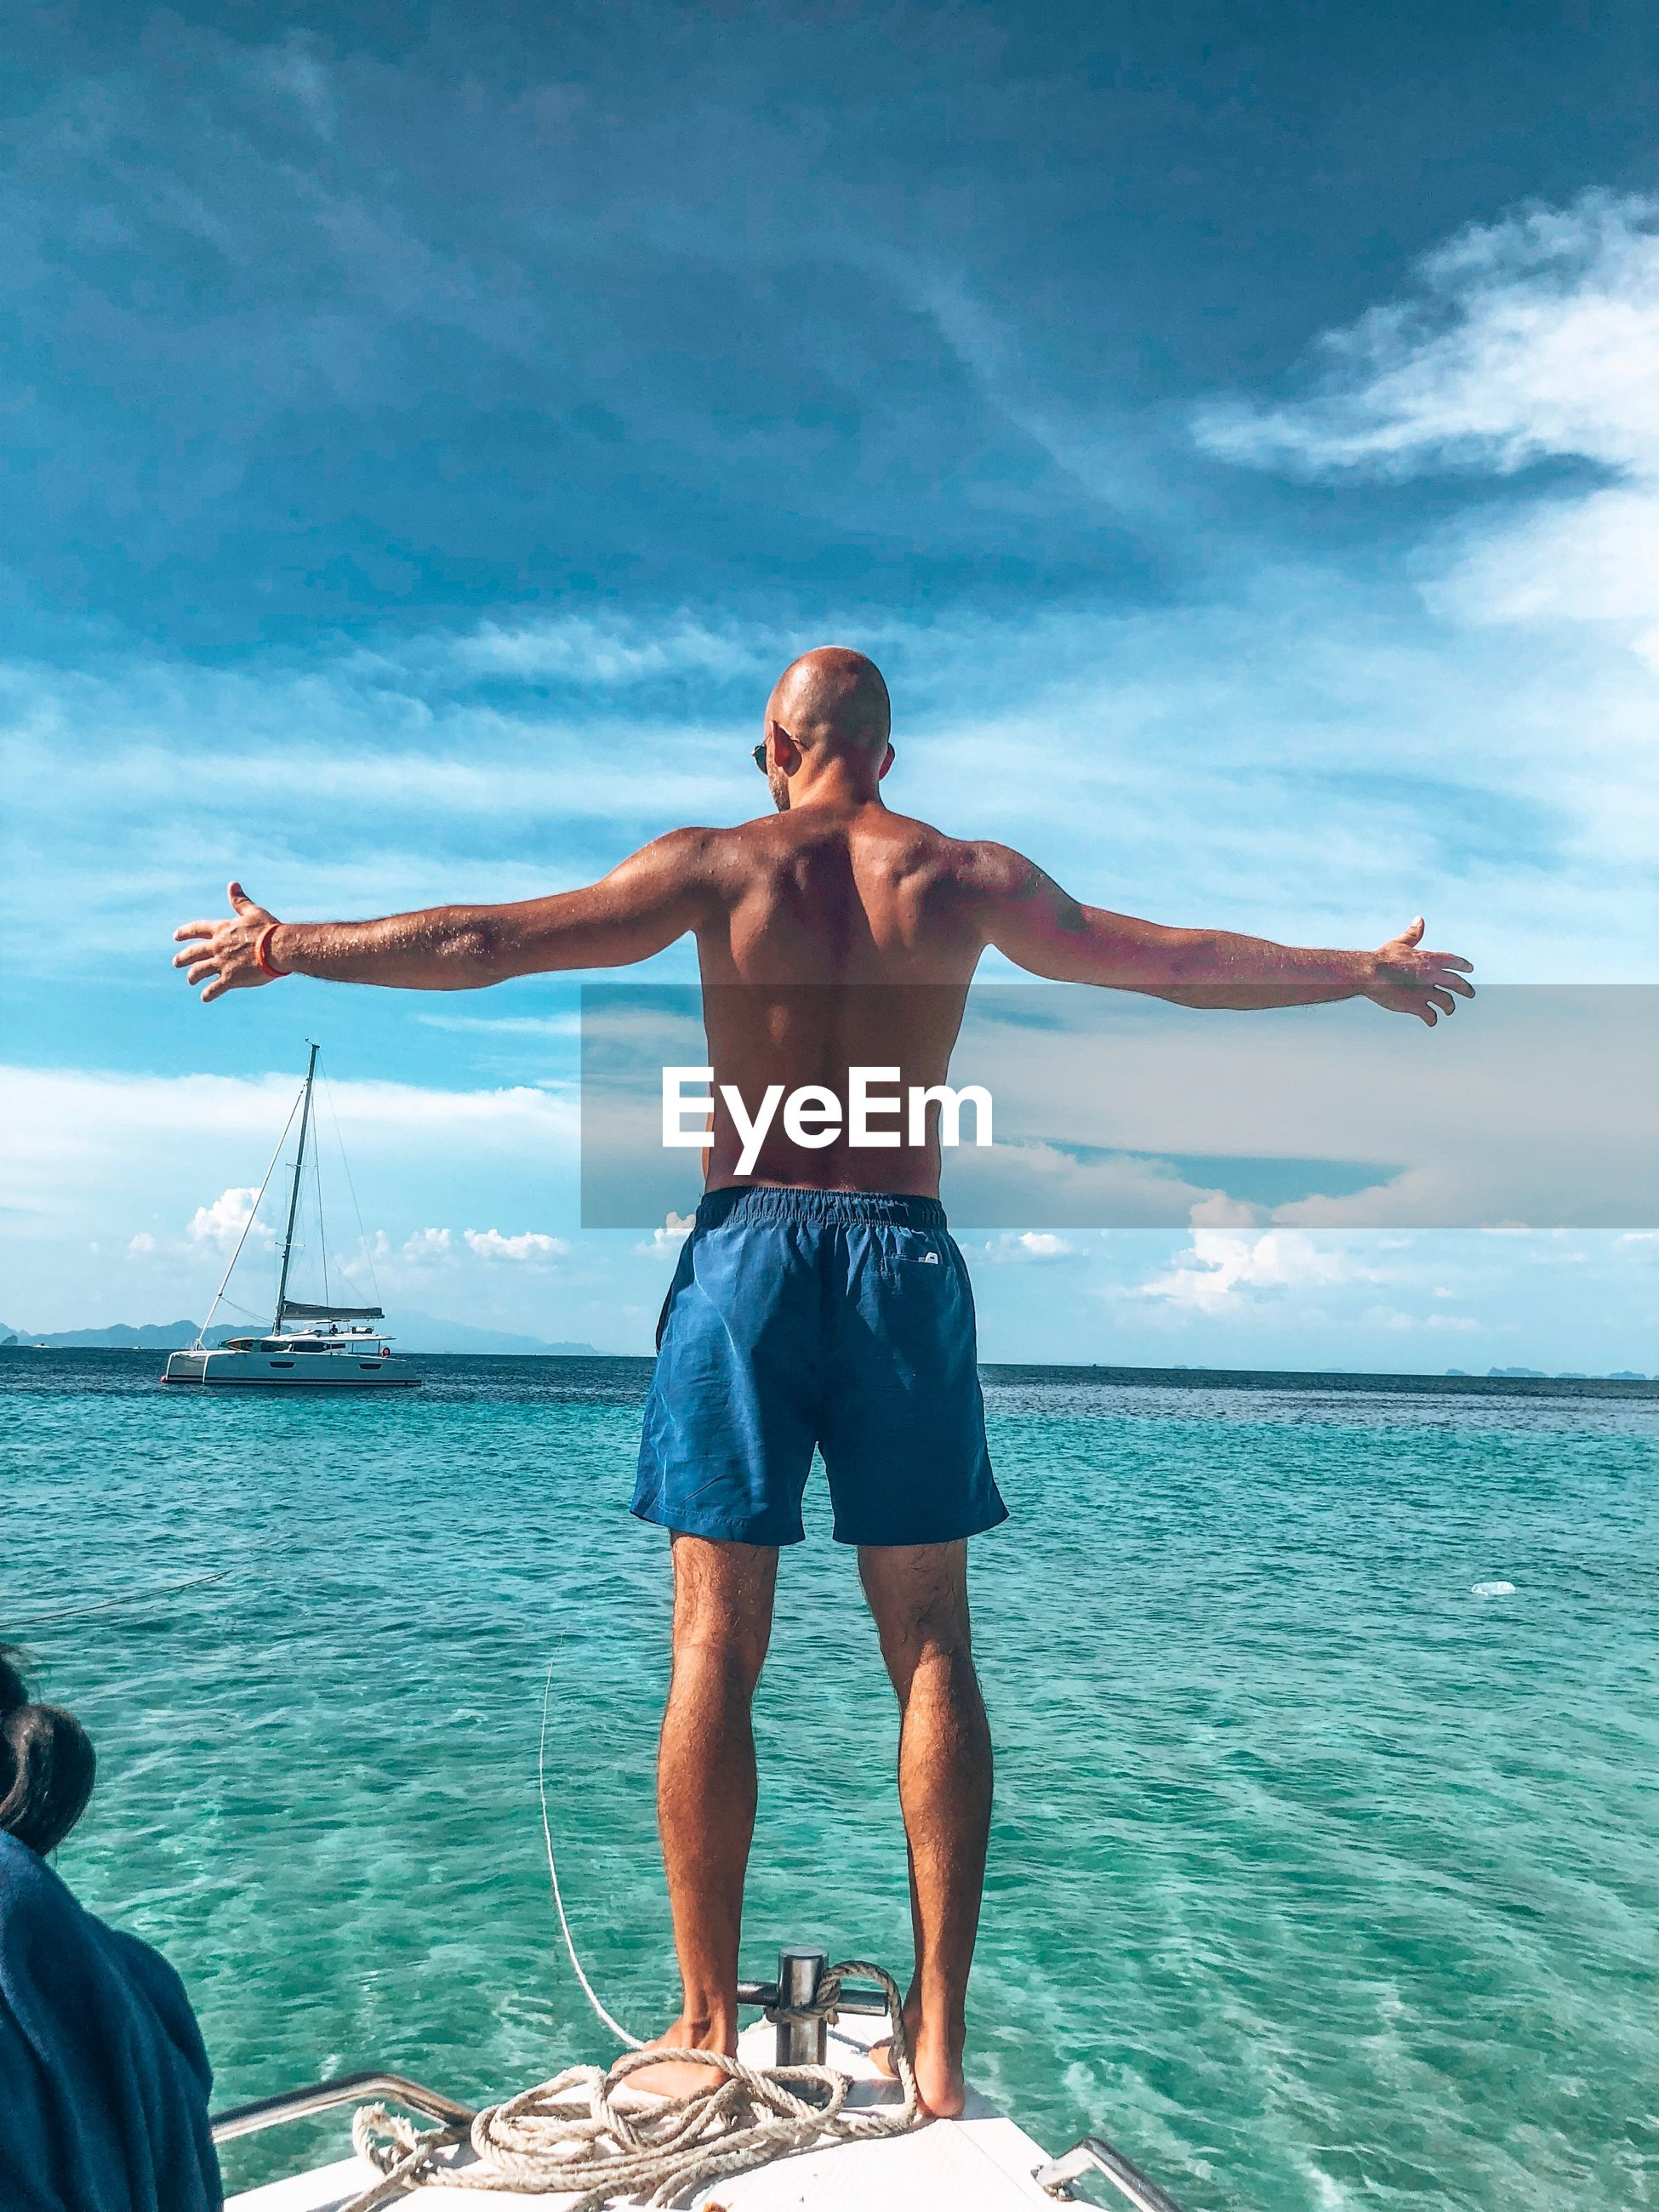 Full length rear view of shirtless man with arms outstretched standing on sailboat in sea against sky